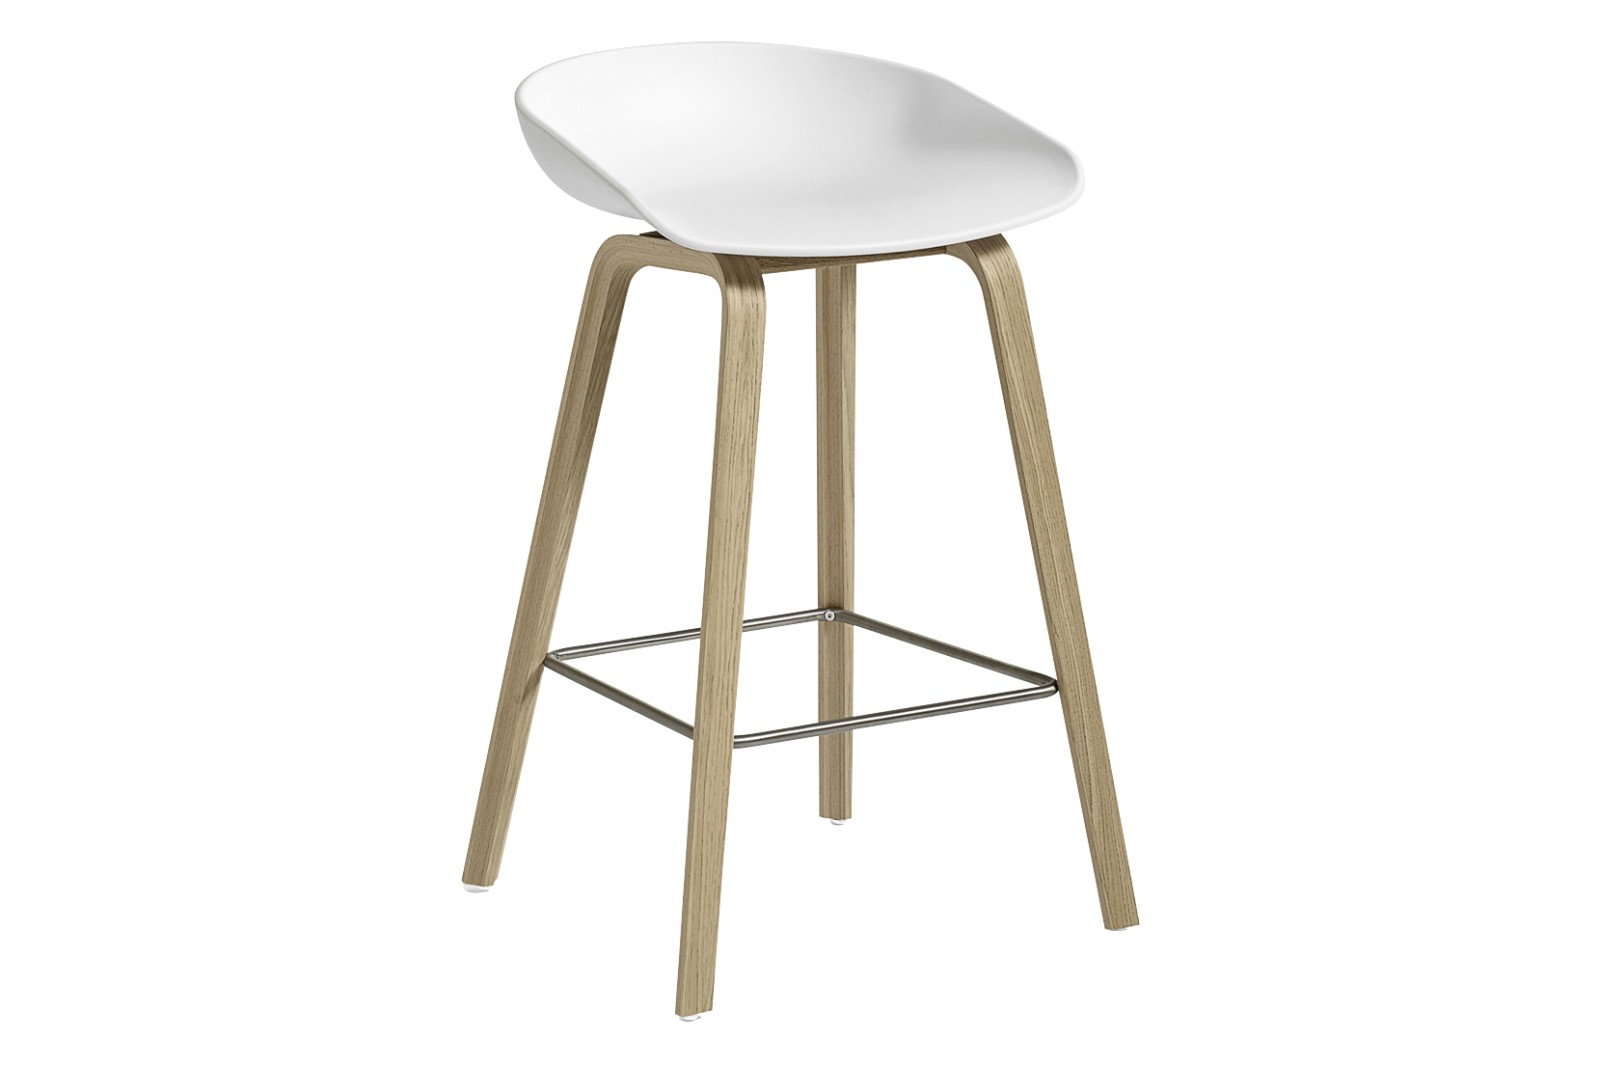 AAS 32 Low Stool Plastic White, Wood Matt Oak, Metal Stainless Steel